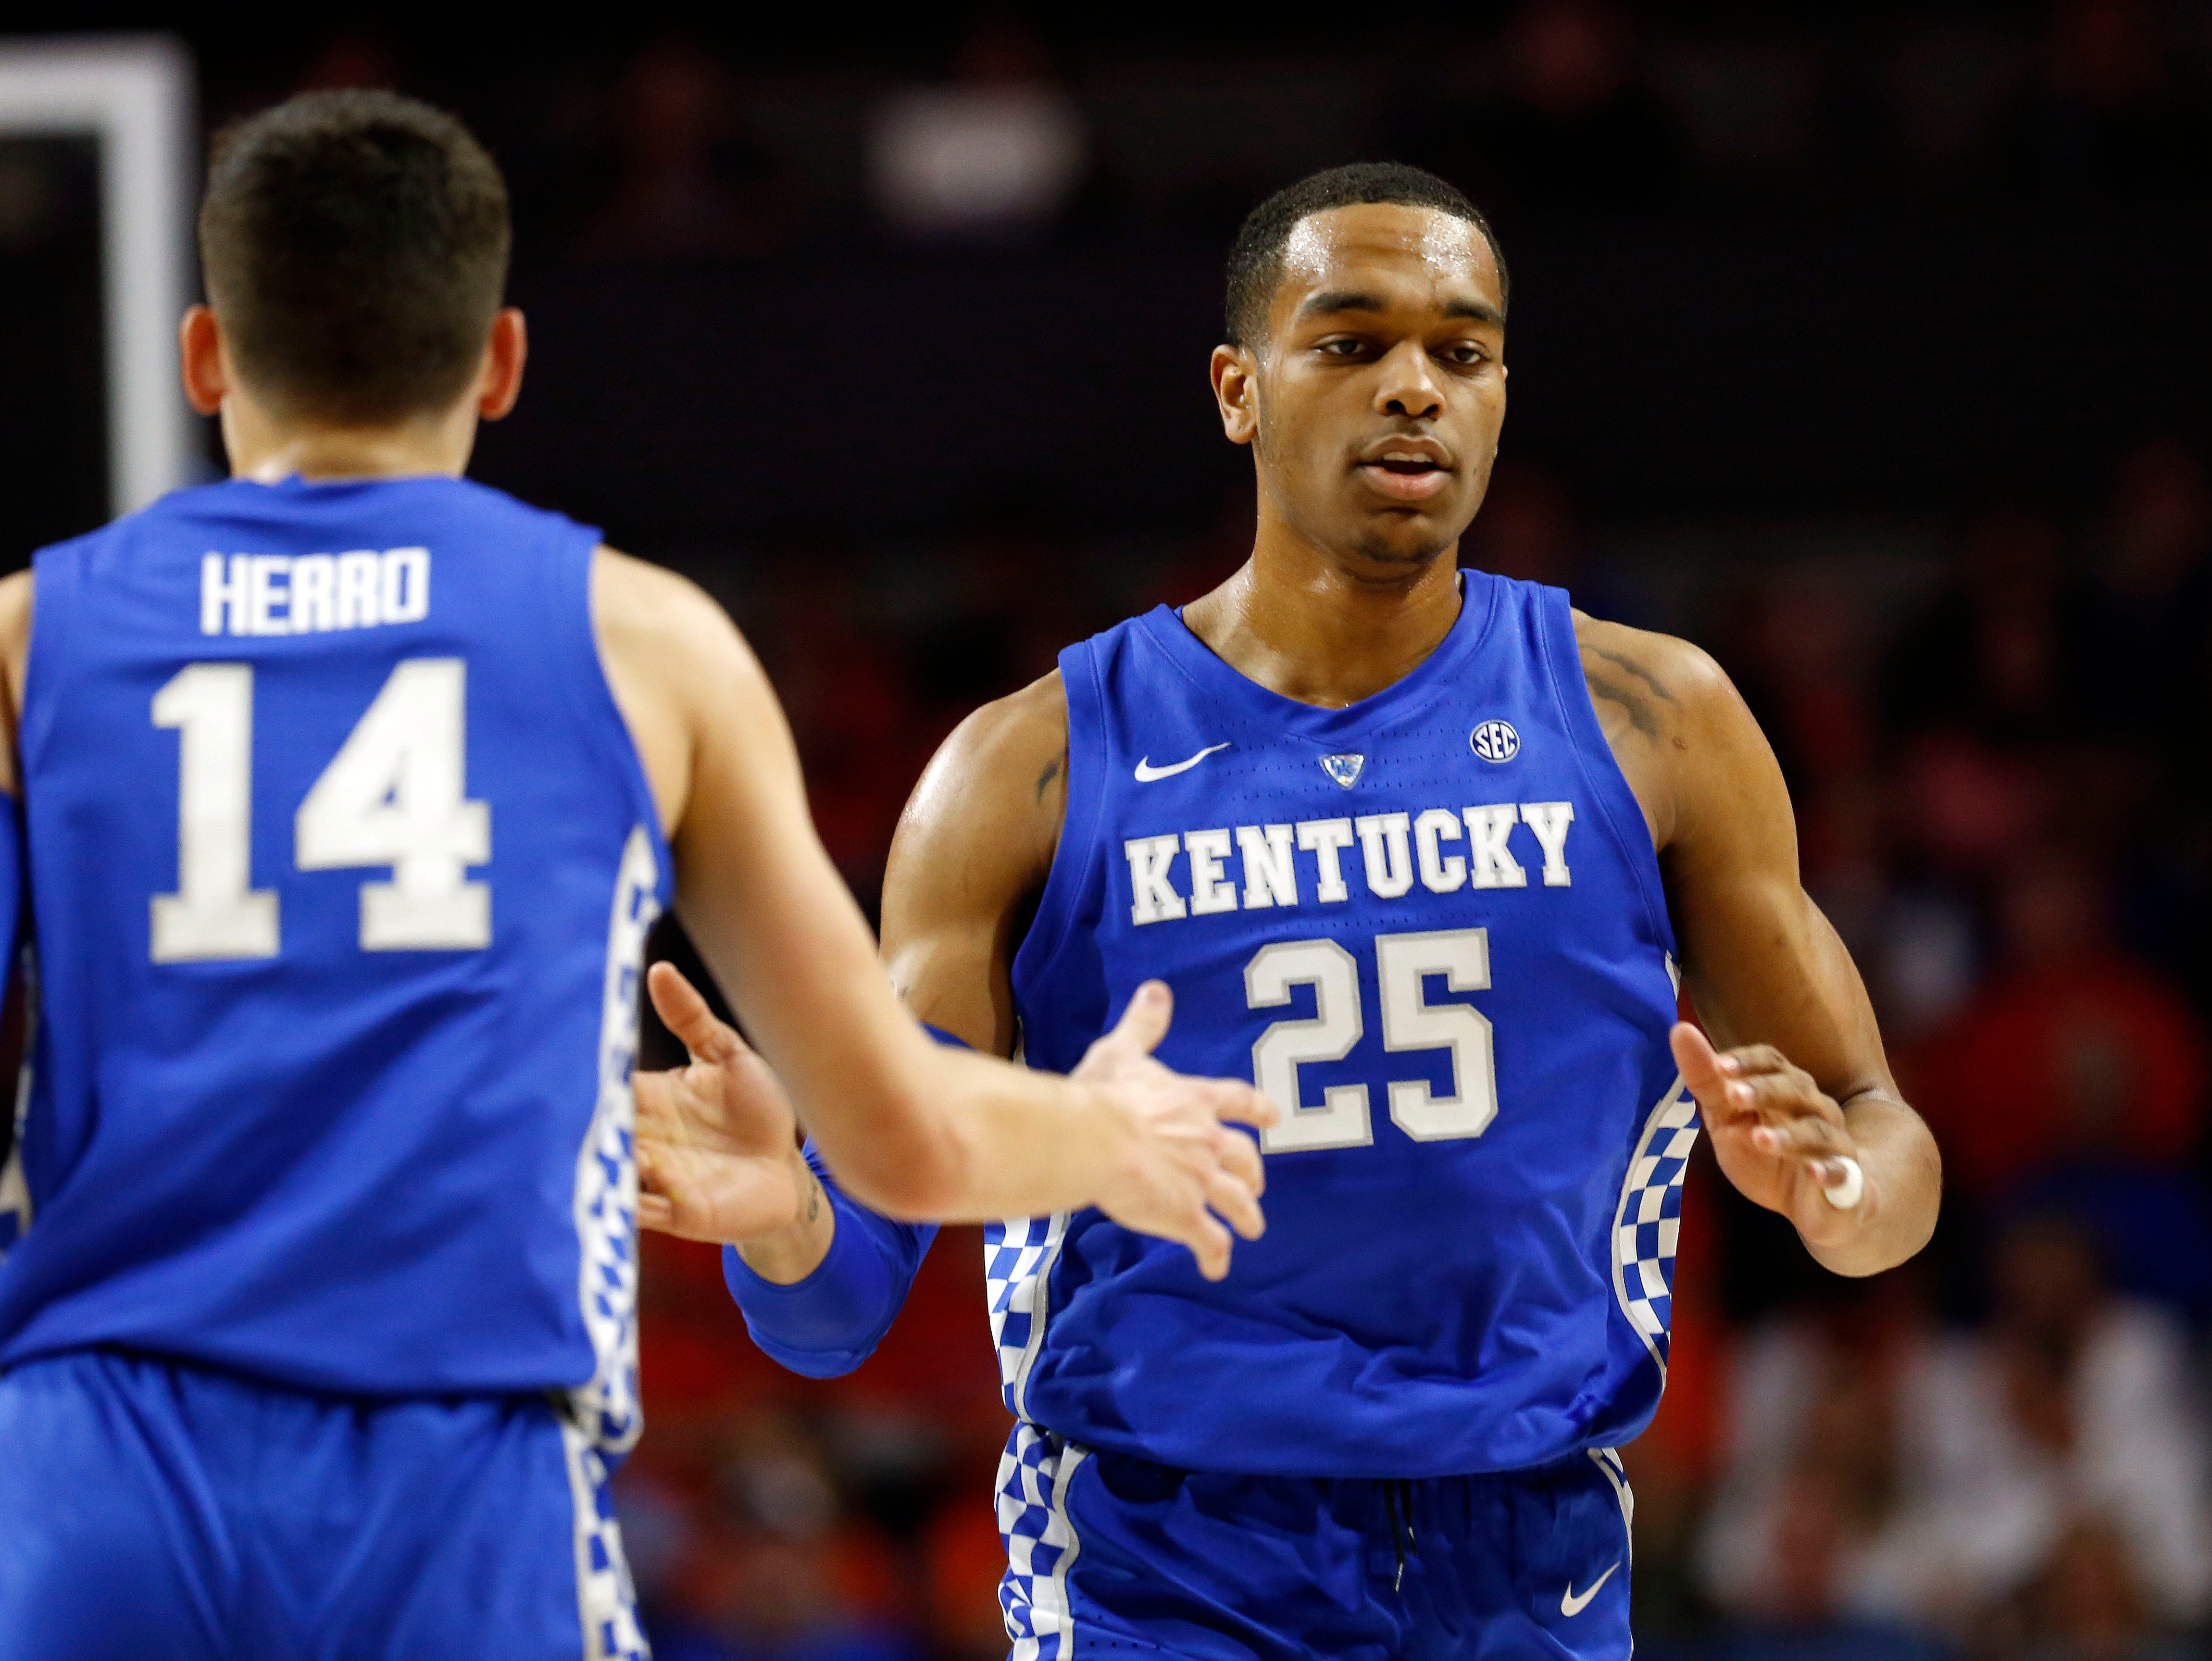 Kentucky Wildcats forward PJ Washington (25) and guard Tyler Herro (14) high five against the Florida Gators during the first half at Exactech Arena in Gainesville, Florida, on Saturday, Feb. 2, 2019.